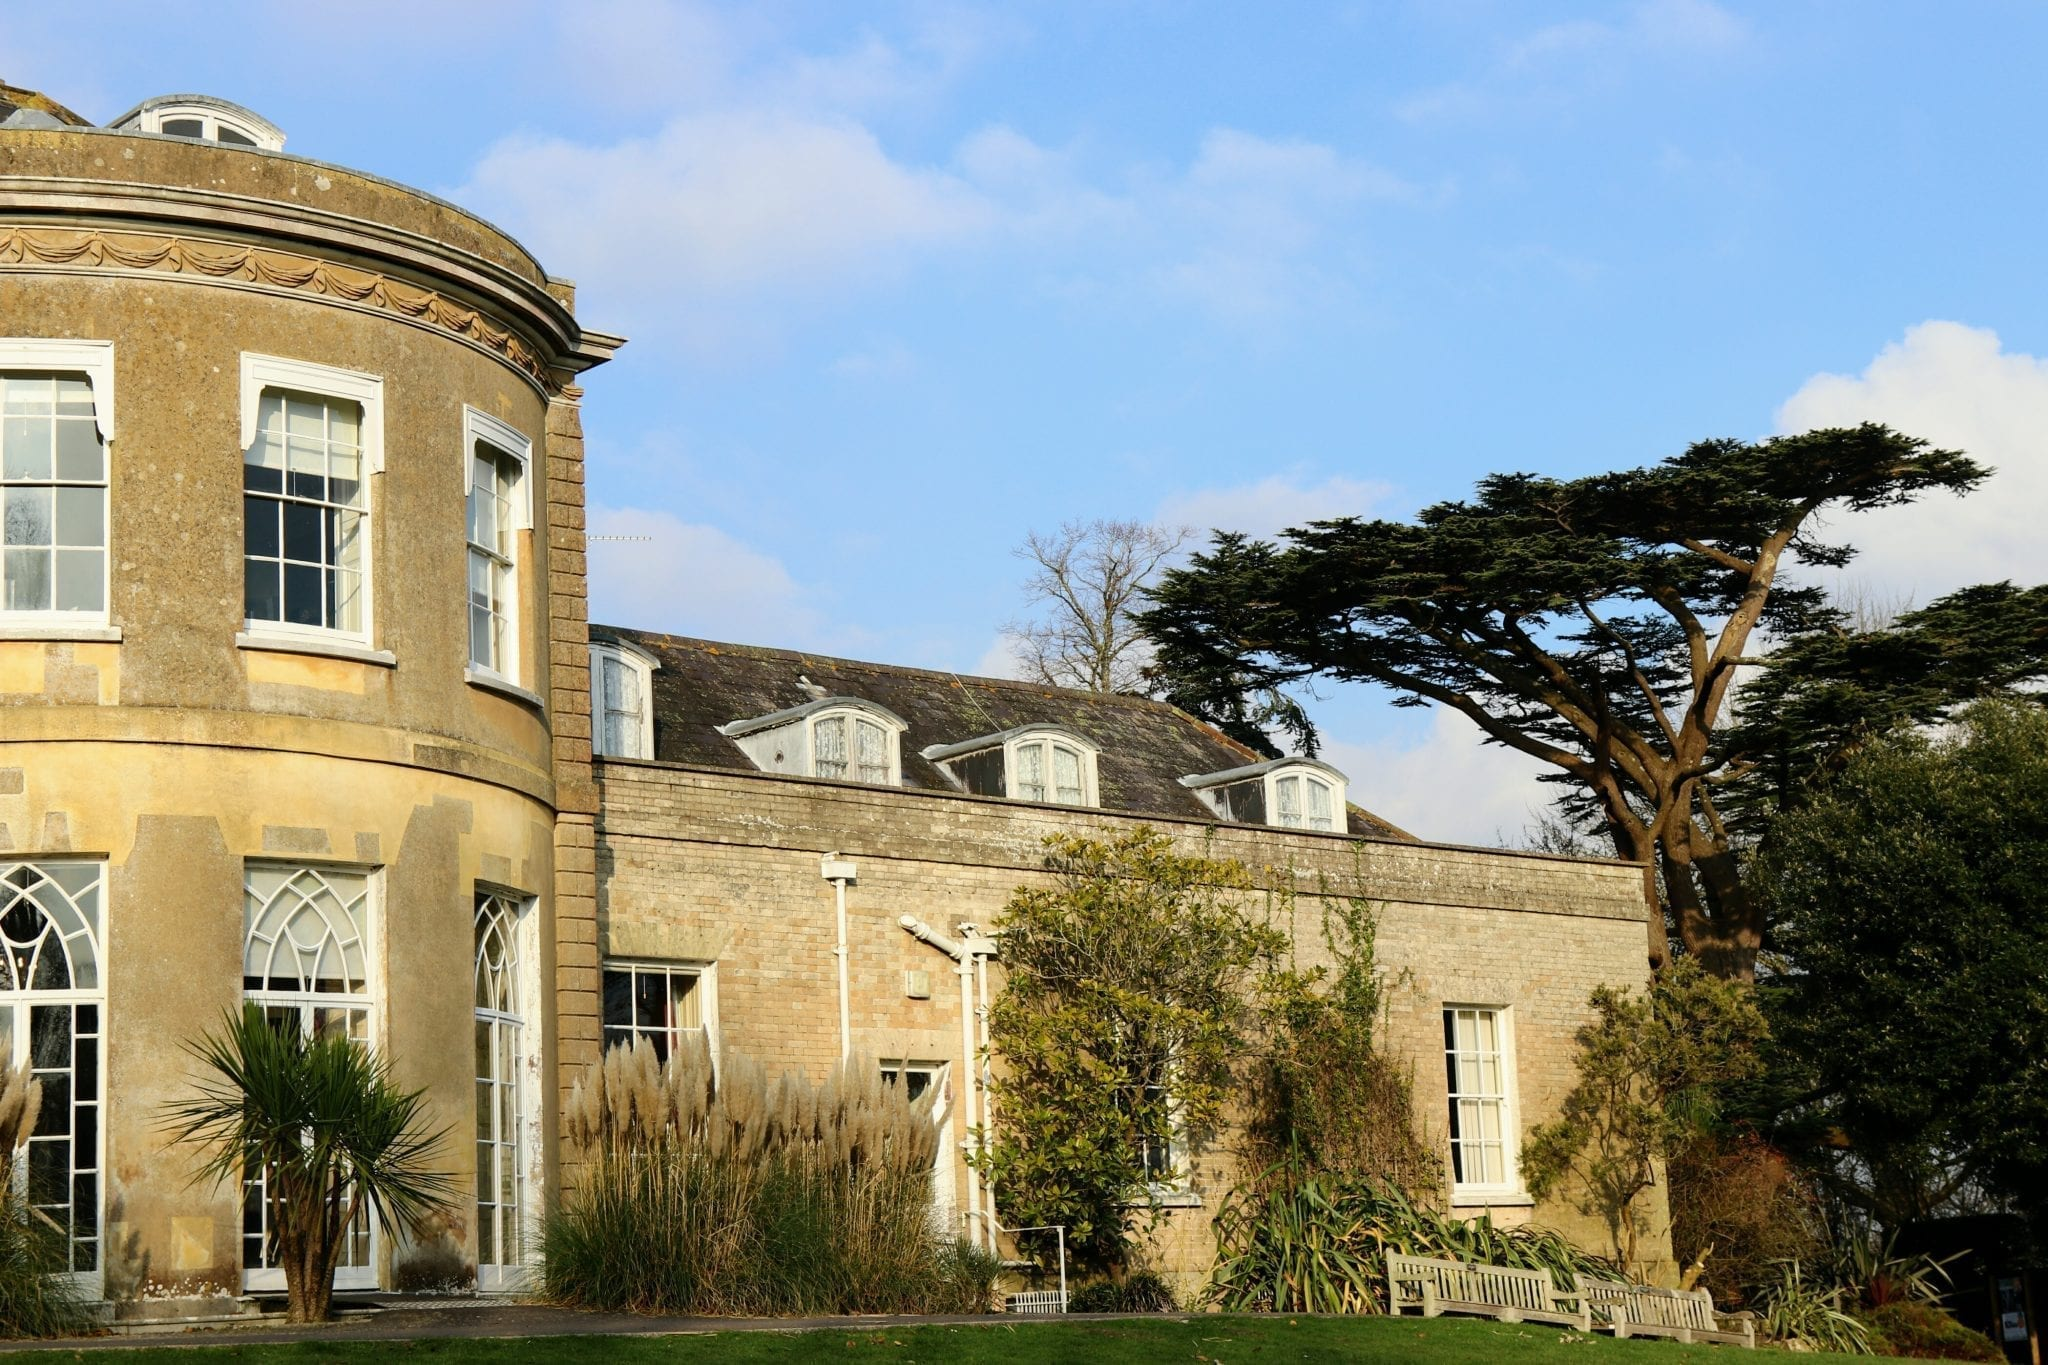 Free Stock Photo - Upton House, Poole